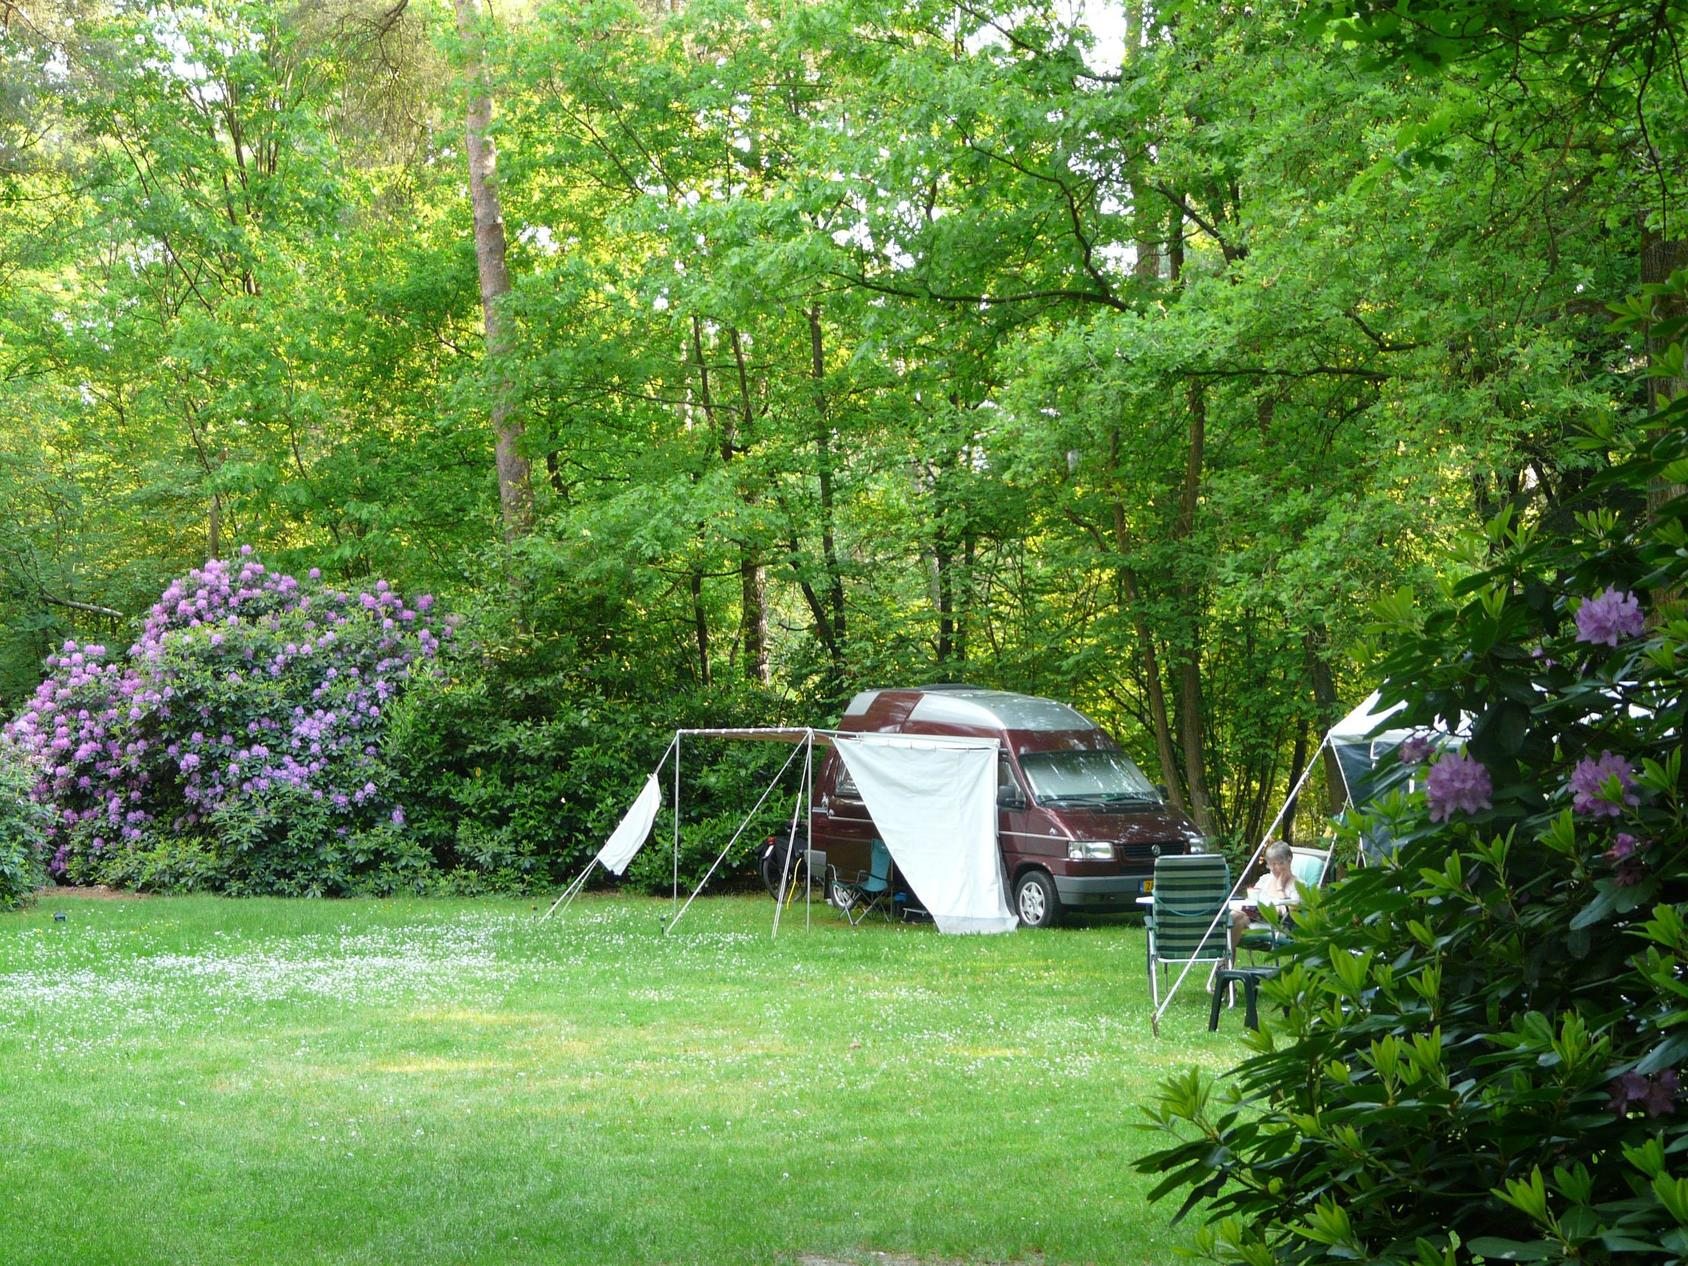 487e4a4bc43 Camping Morgenrood - Noord-Brabant - Nederland | ANWB Camping